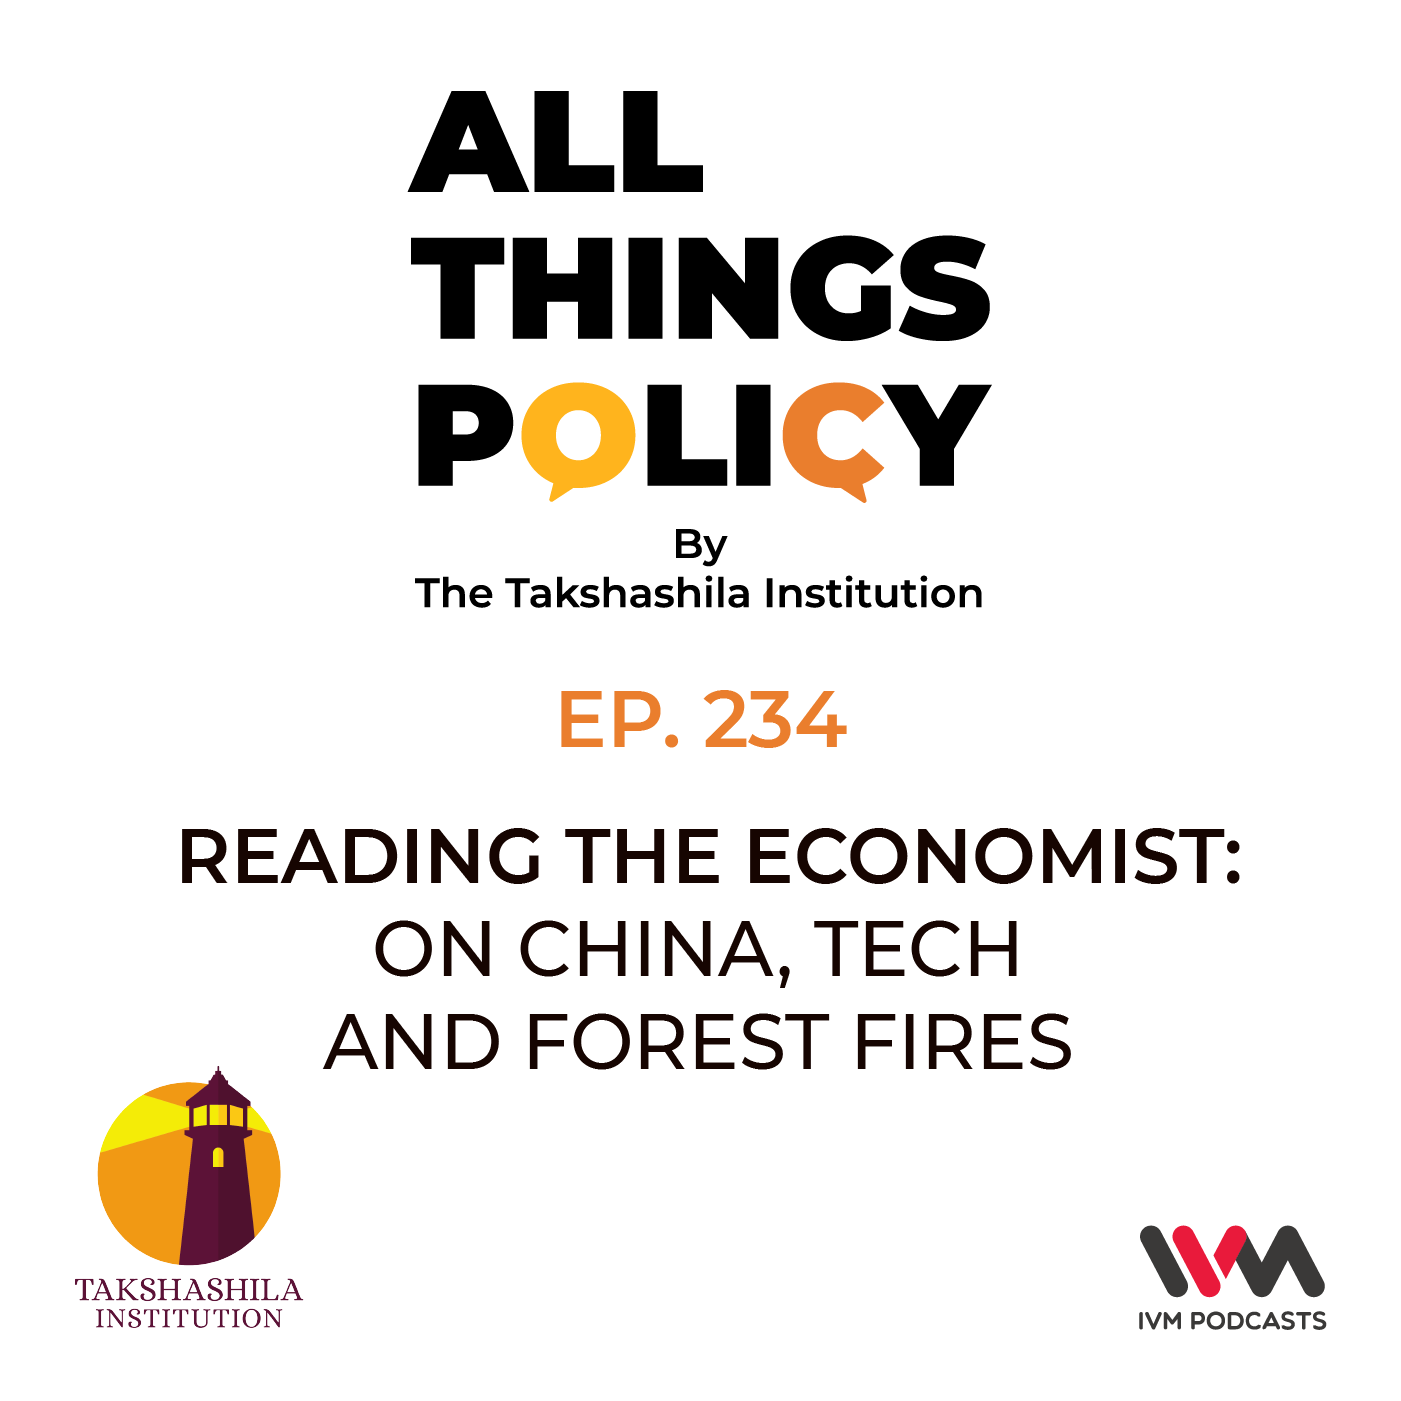 Ep. 234: Reading the Economist: On China, Tech and Forest Fires